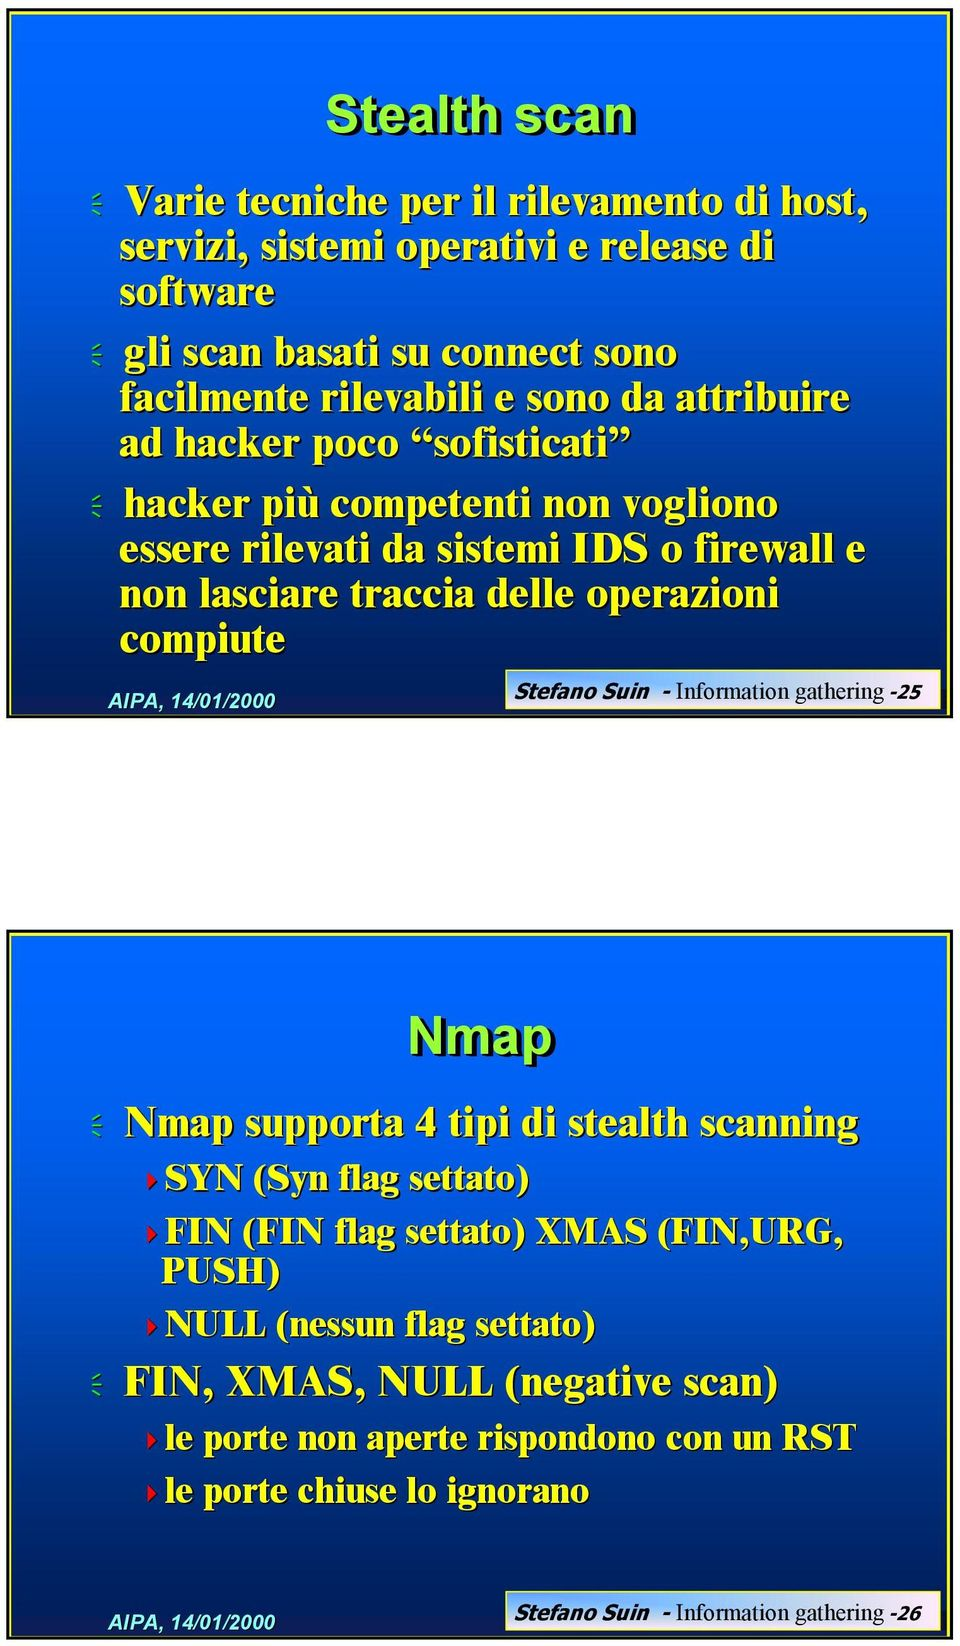 compiute Stefano Suin - Information gathering -25 Nmap Nmap supporta 4 tipi di stealth scanning SYN (Syn flag settato) FIN (FIN flag settato) XMAS (FIN,URG, PUSH)